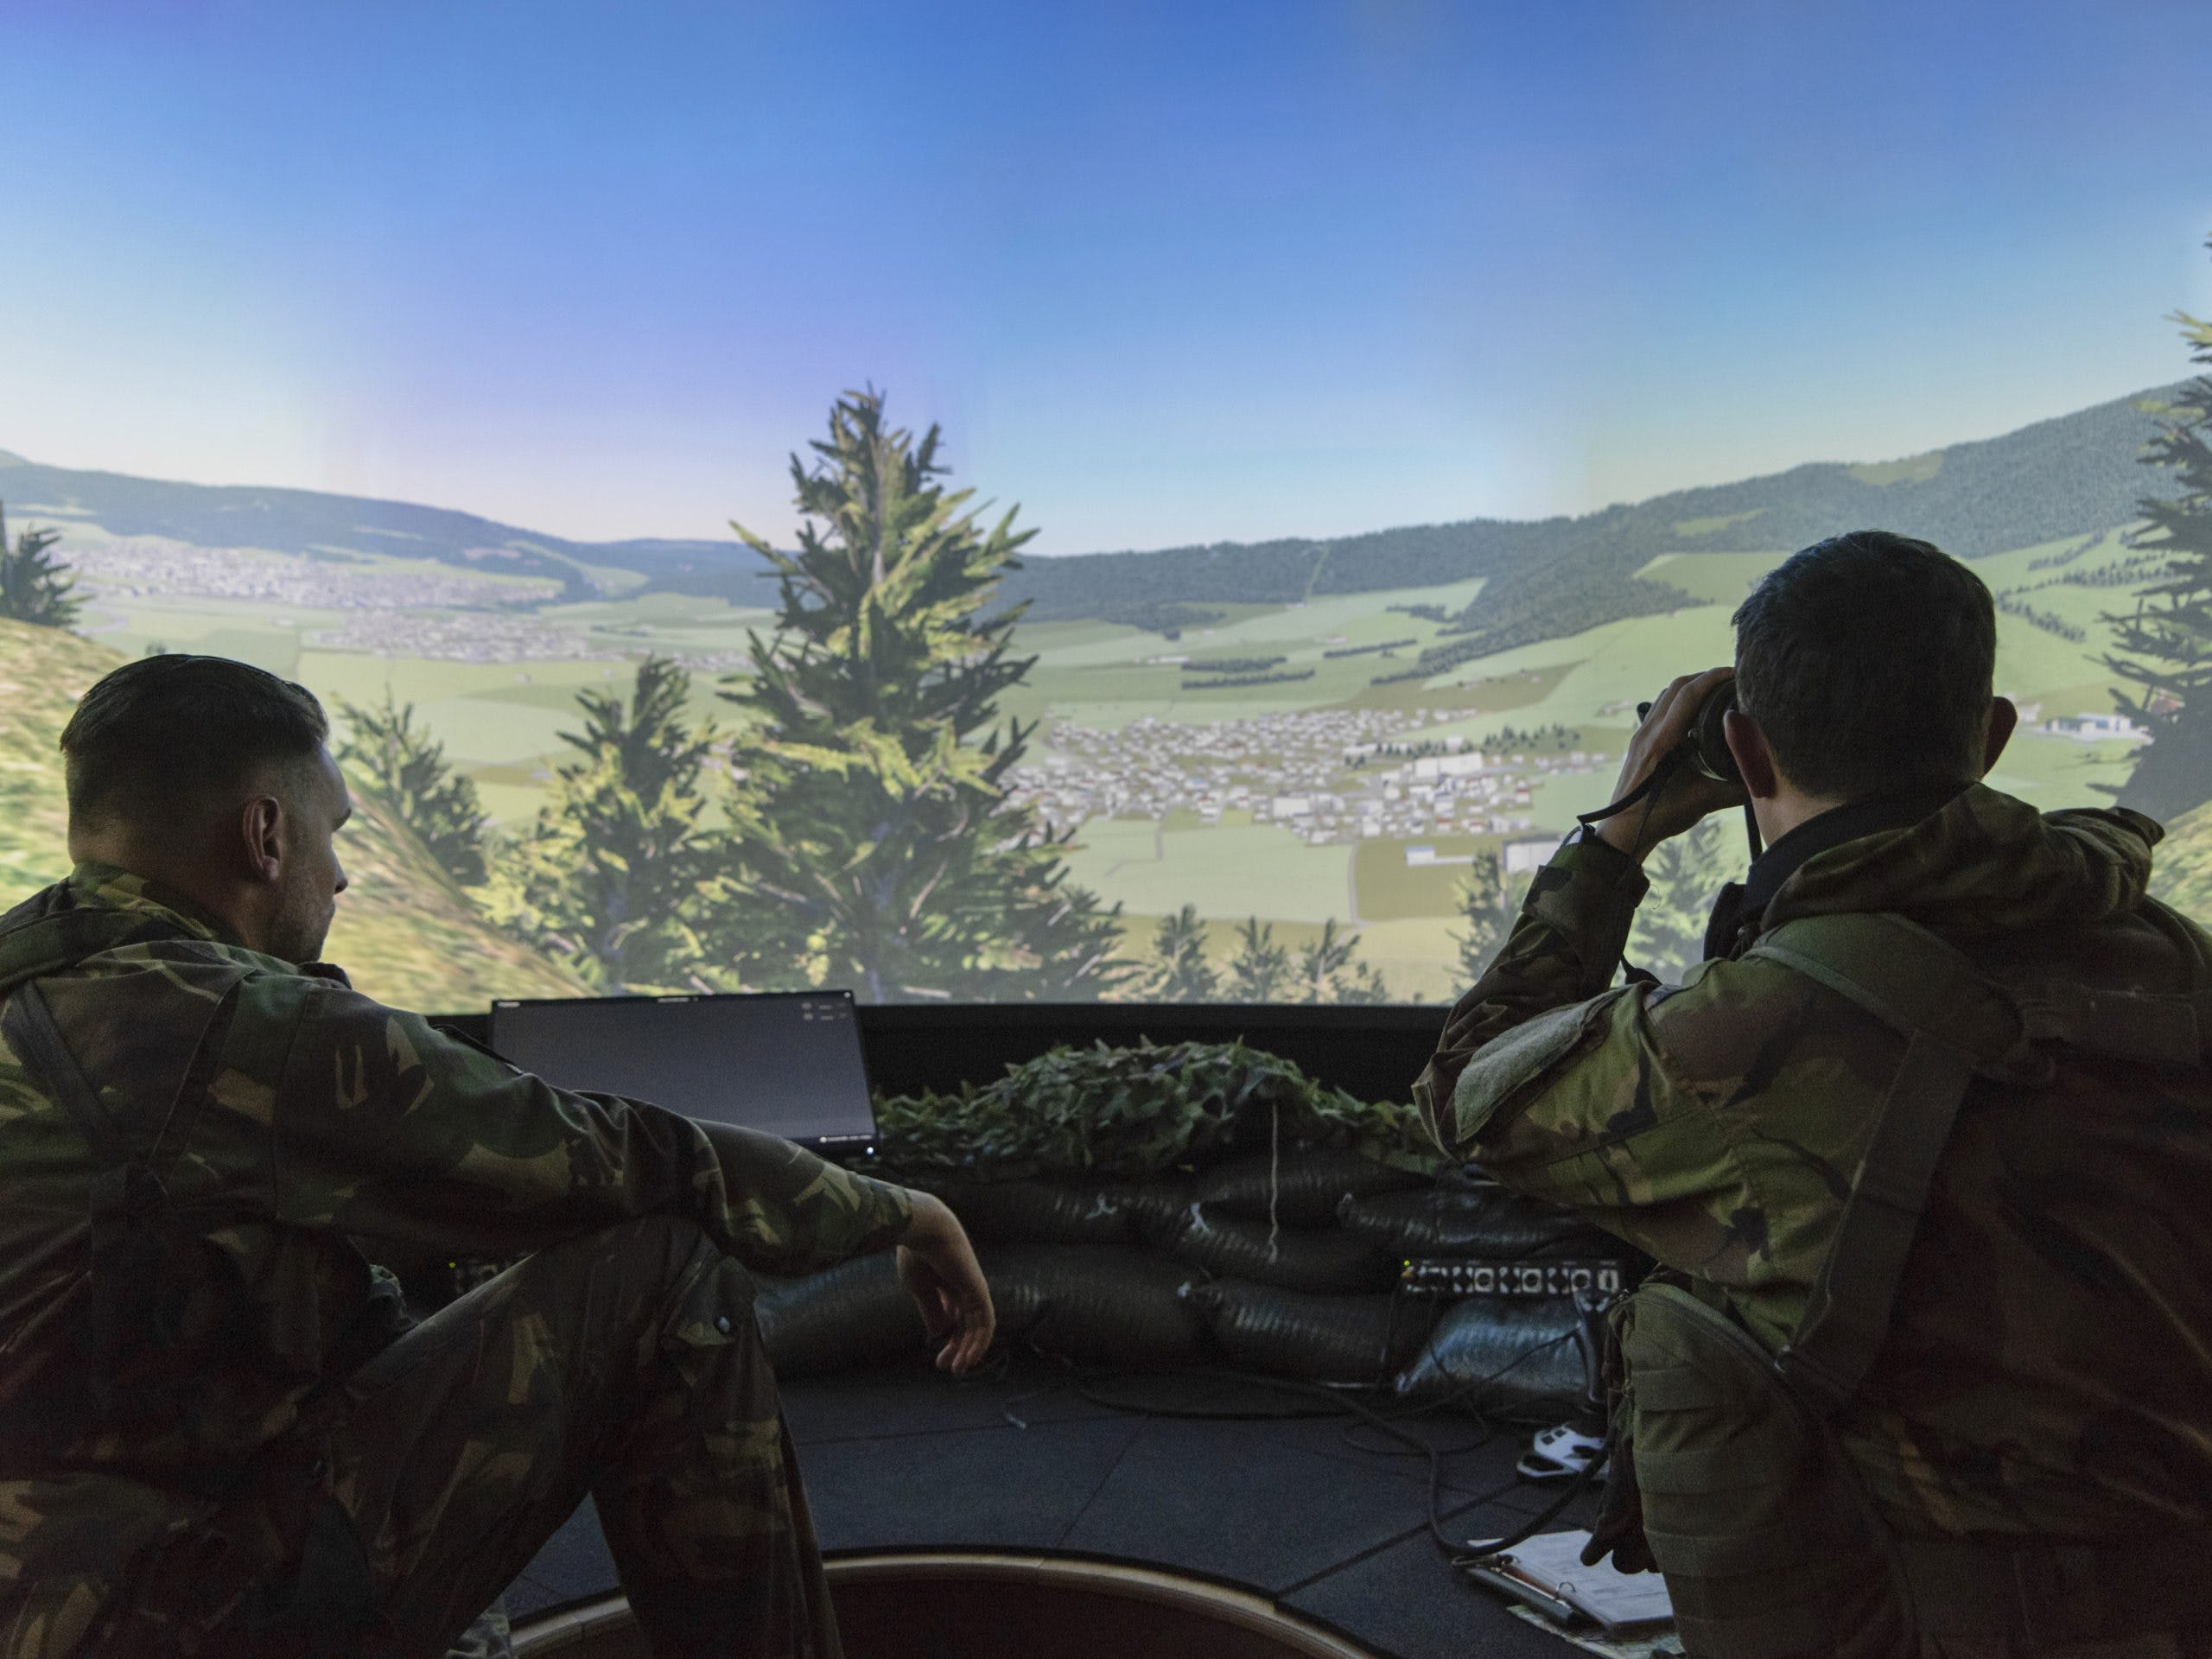 <p>The system presents a realistic battlespace arena using Bagira's B-One Simulation and high-resolution 4M Dome display systems.</p>